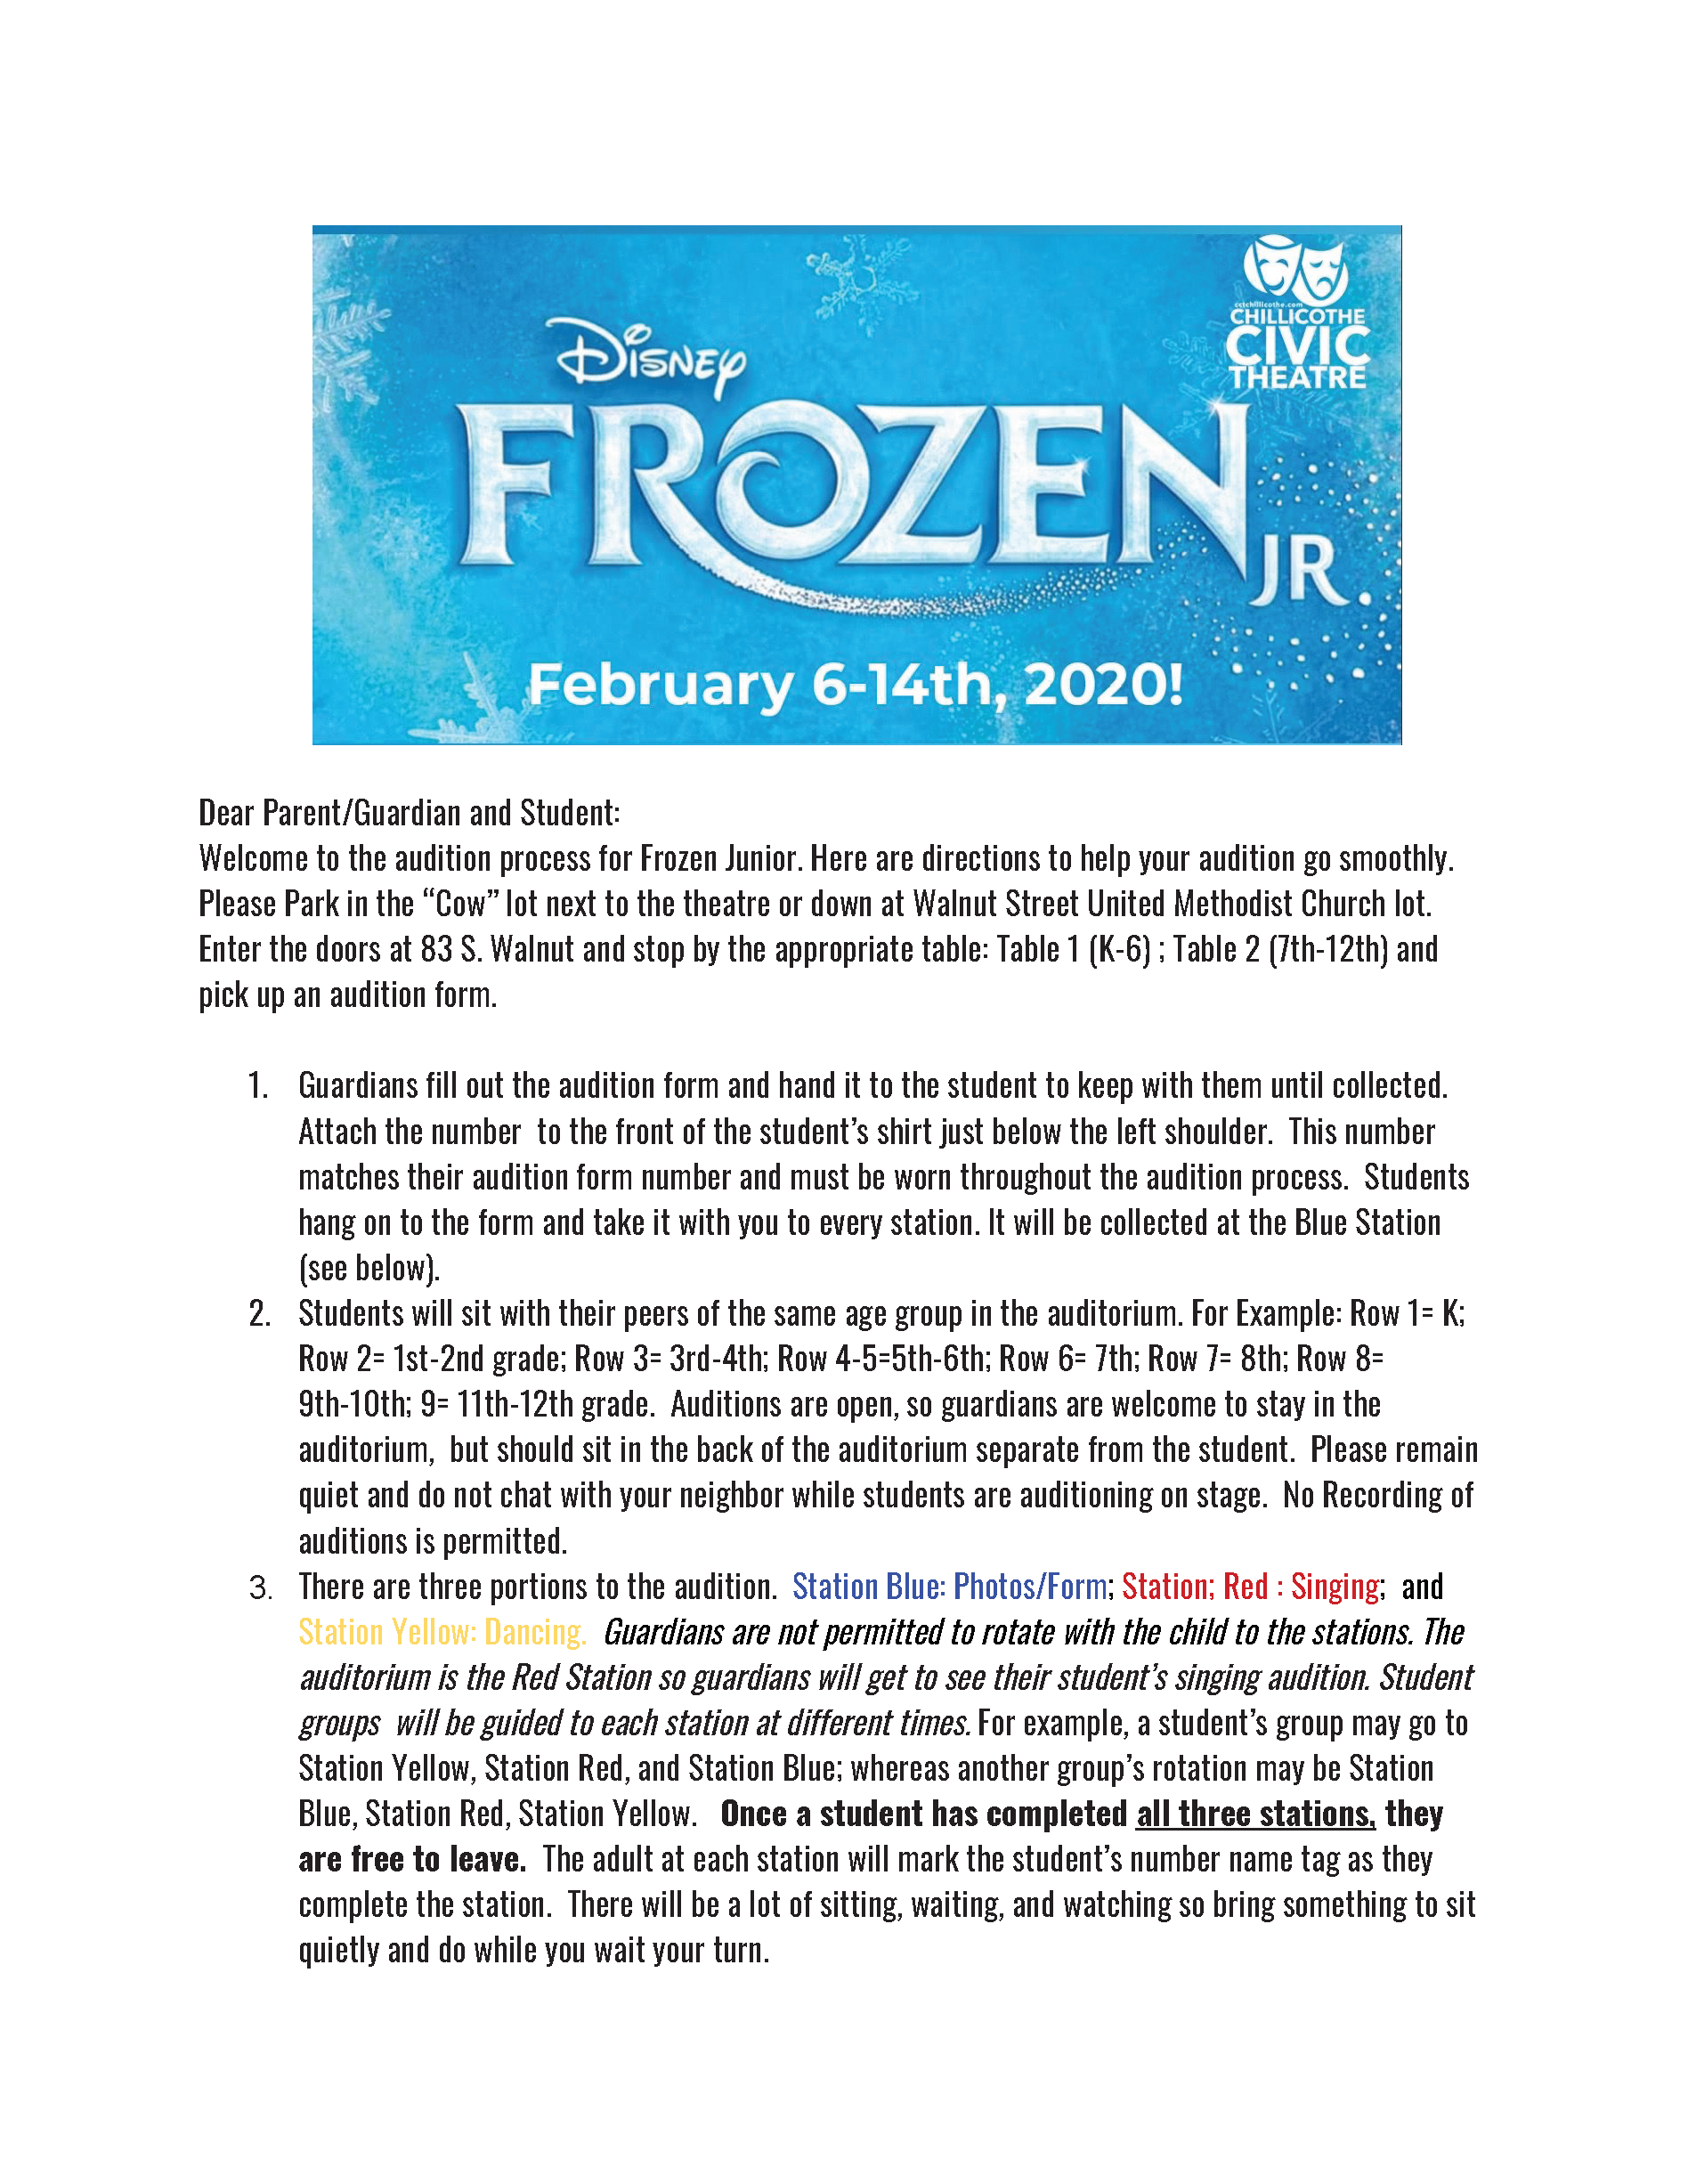 Frozen Audition Cover Letter (1)_Page_1